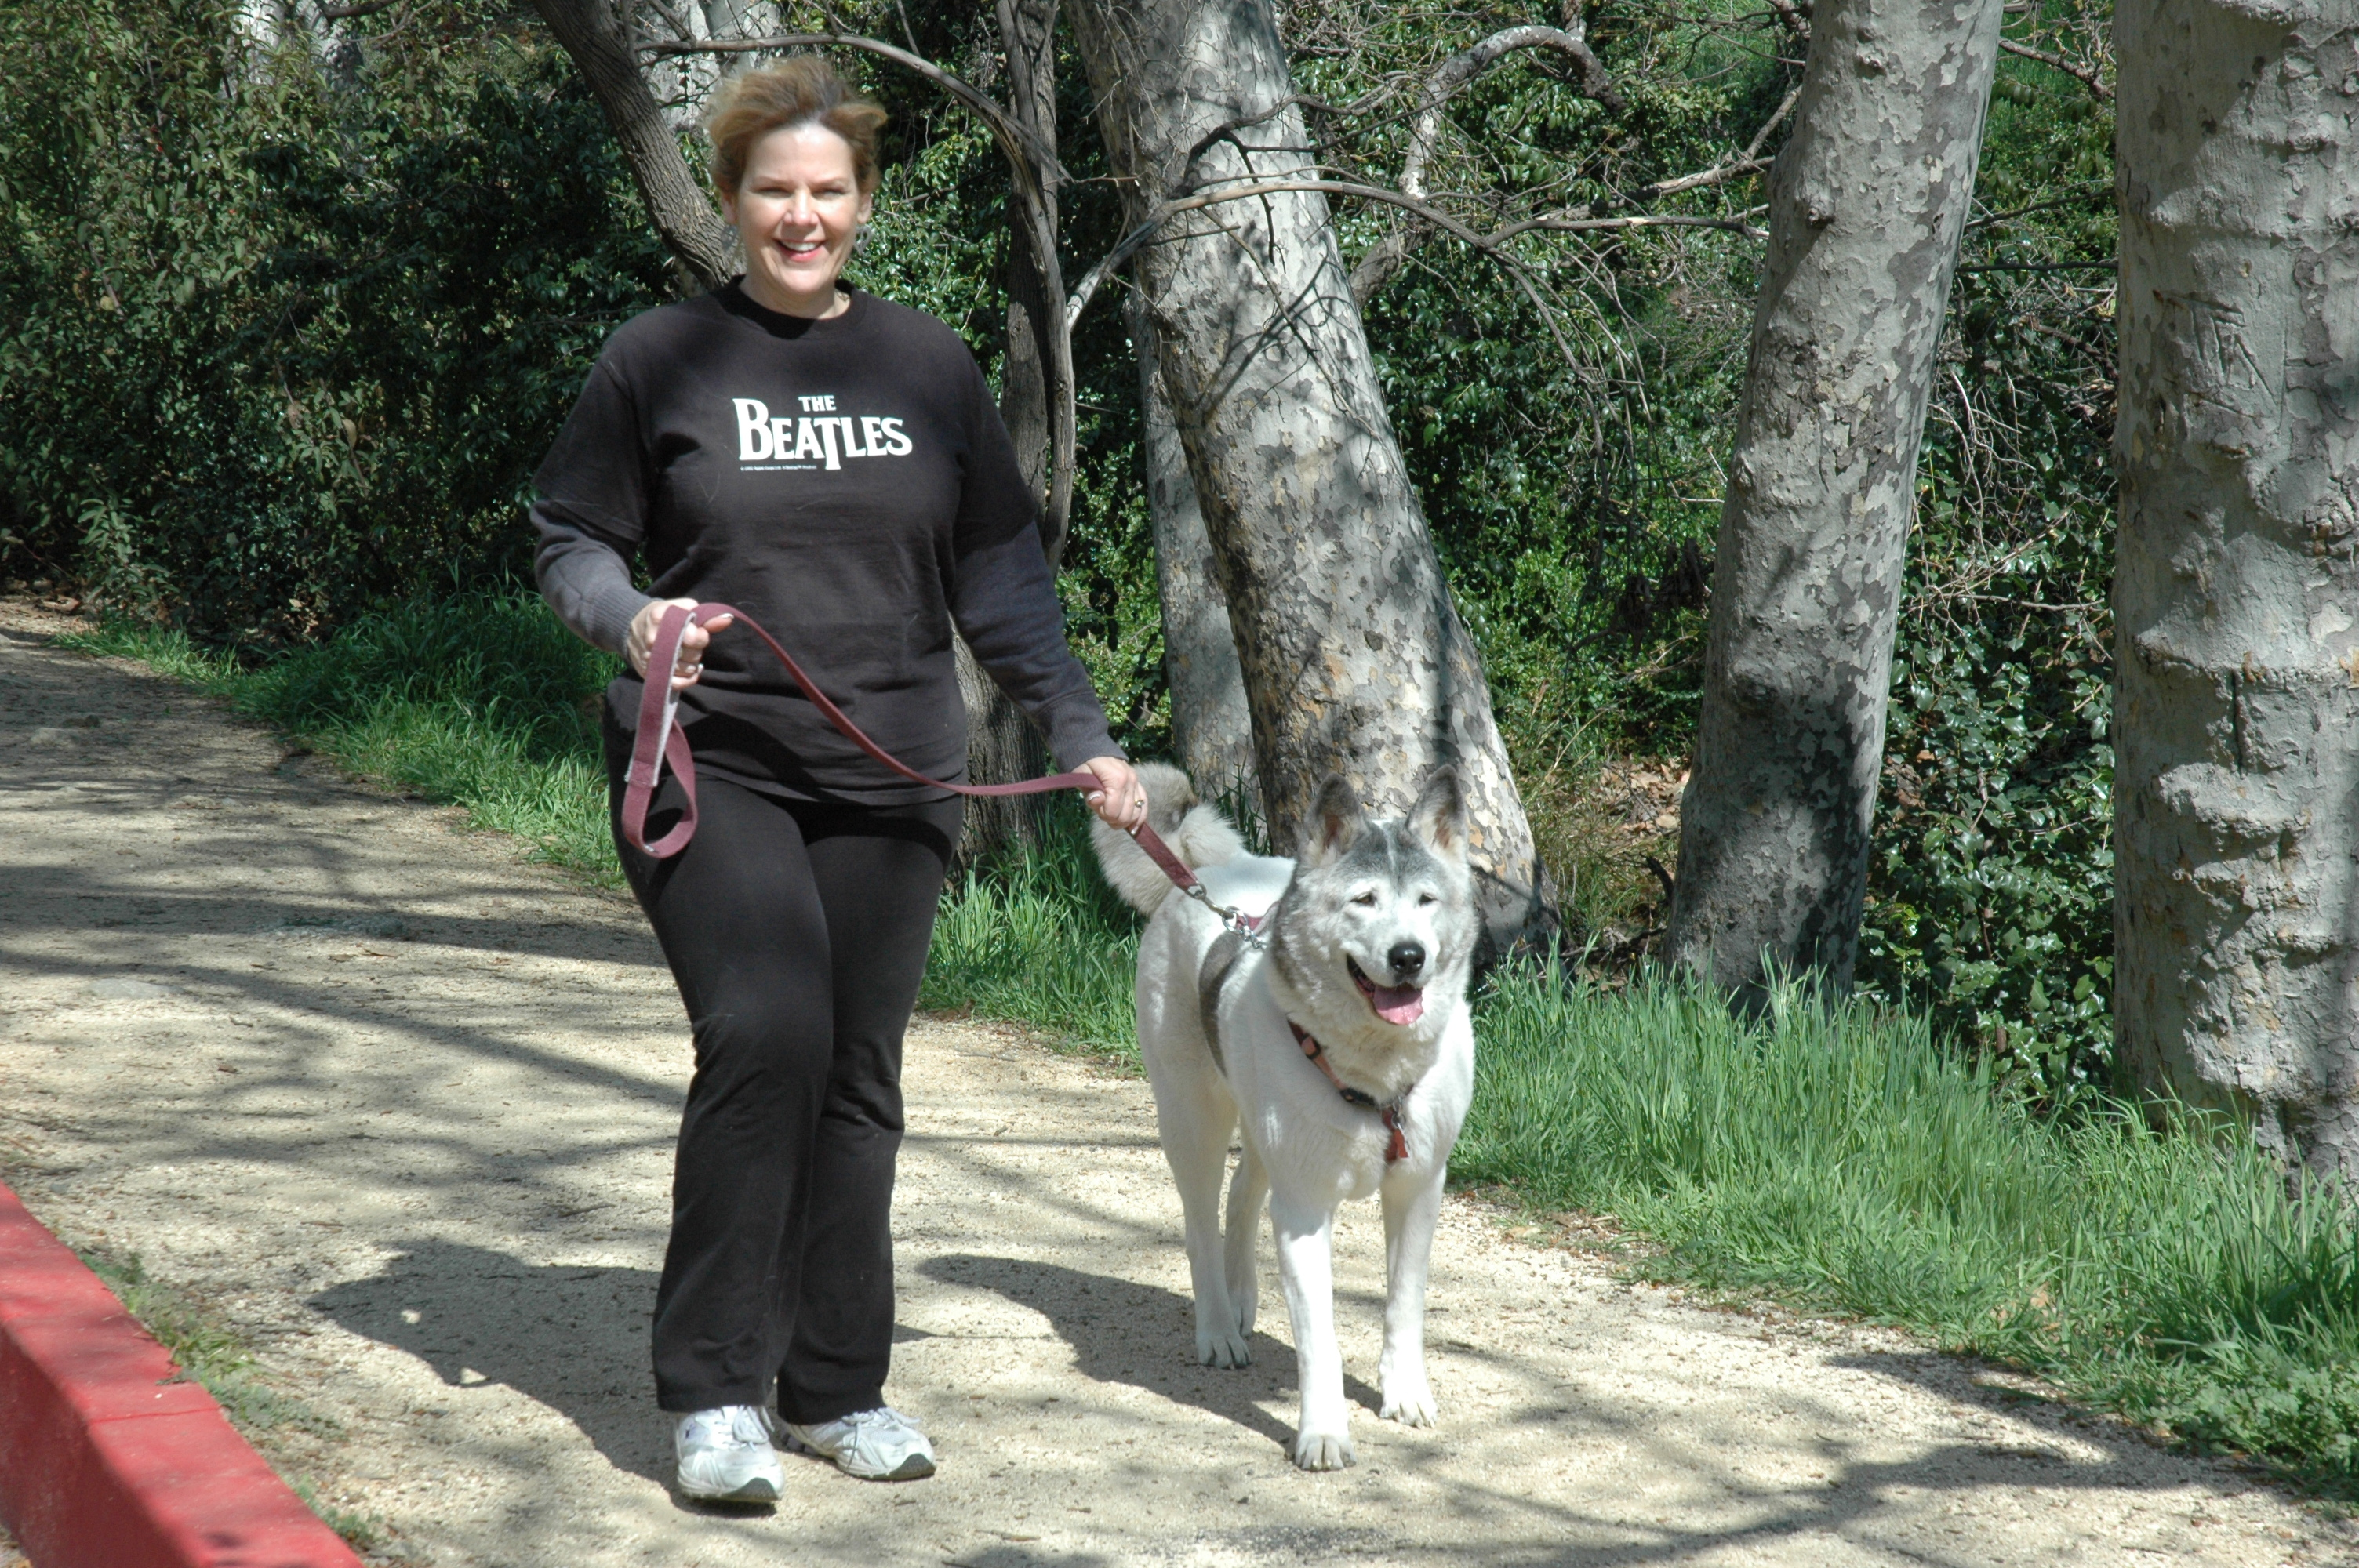 Protecting Your Dog What To Do Should The Worst Happen By Denise